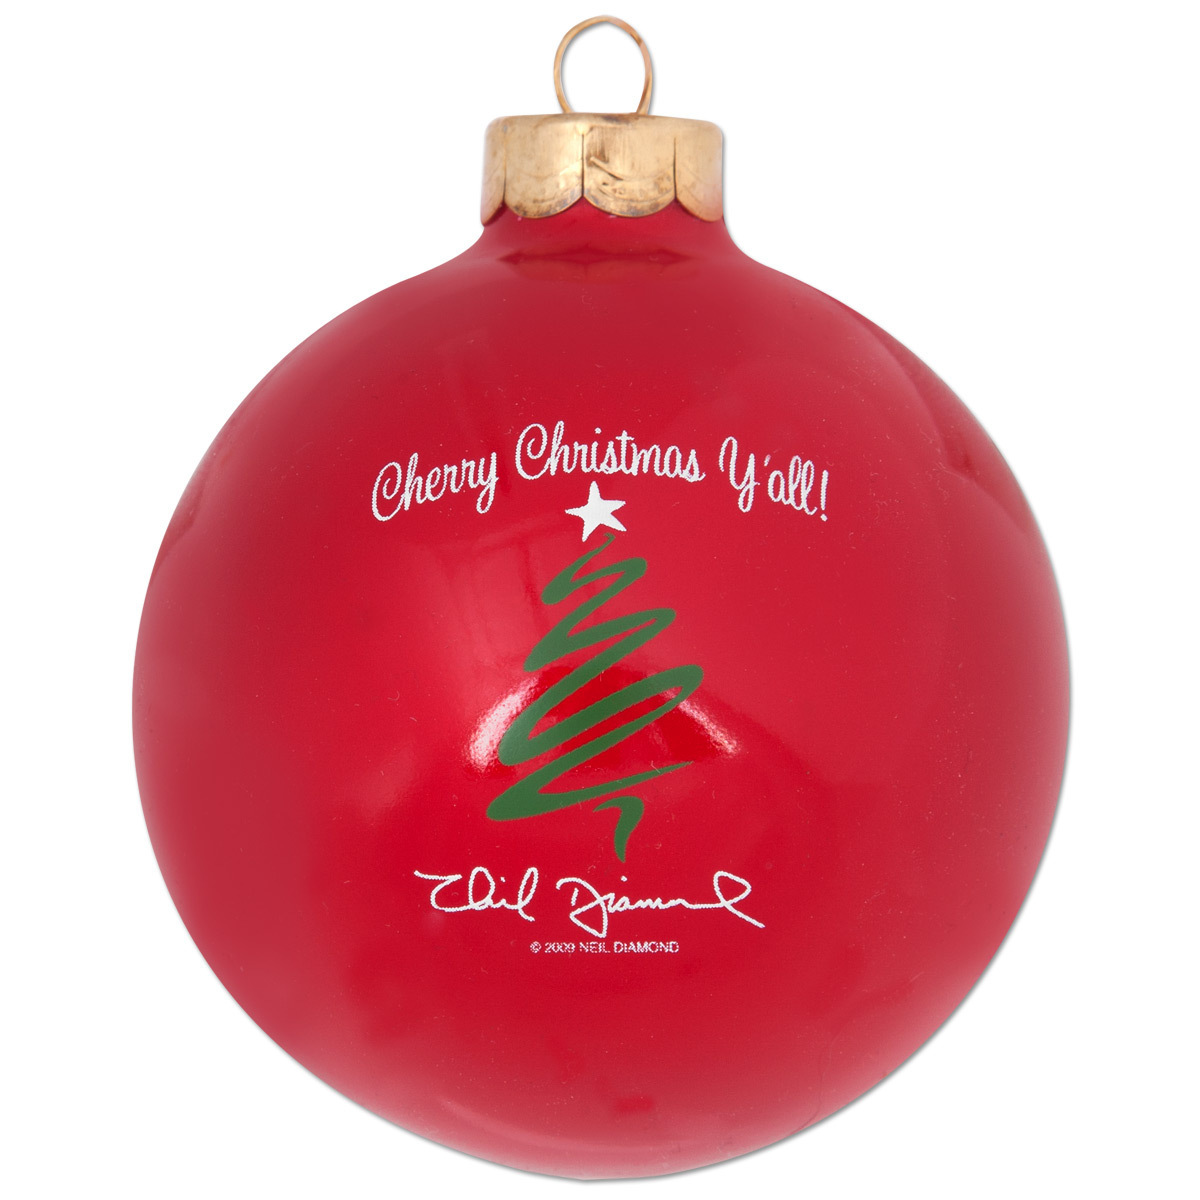 Cherry Christmas Y'all! Collectible Ornament